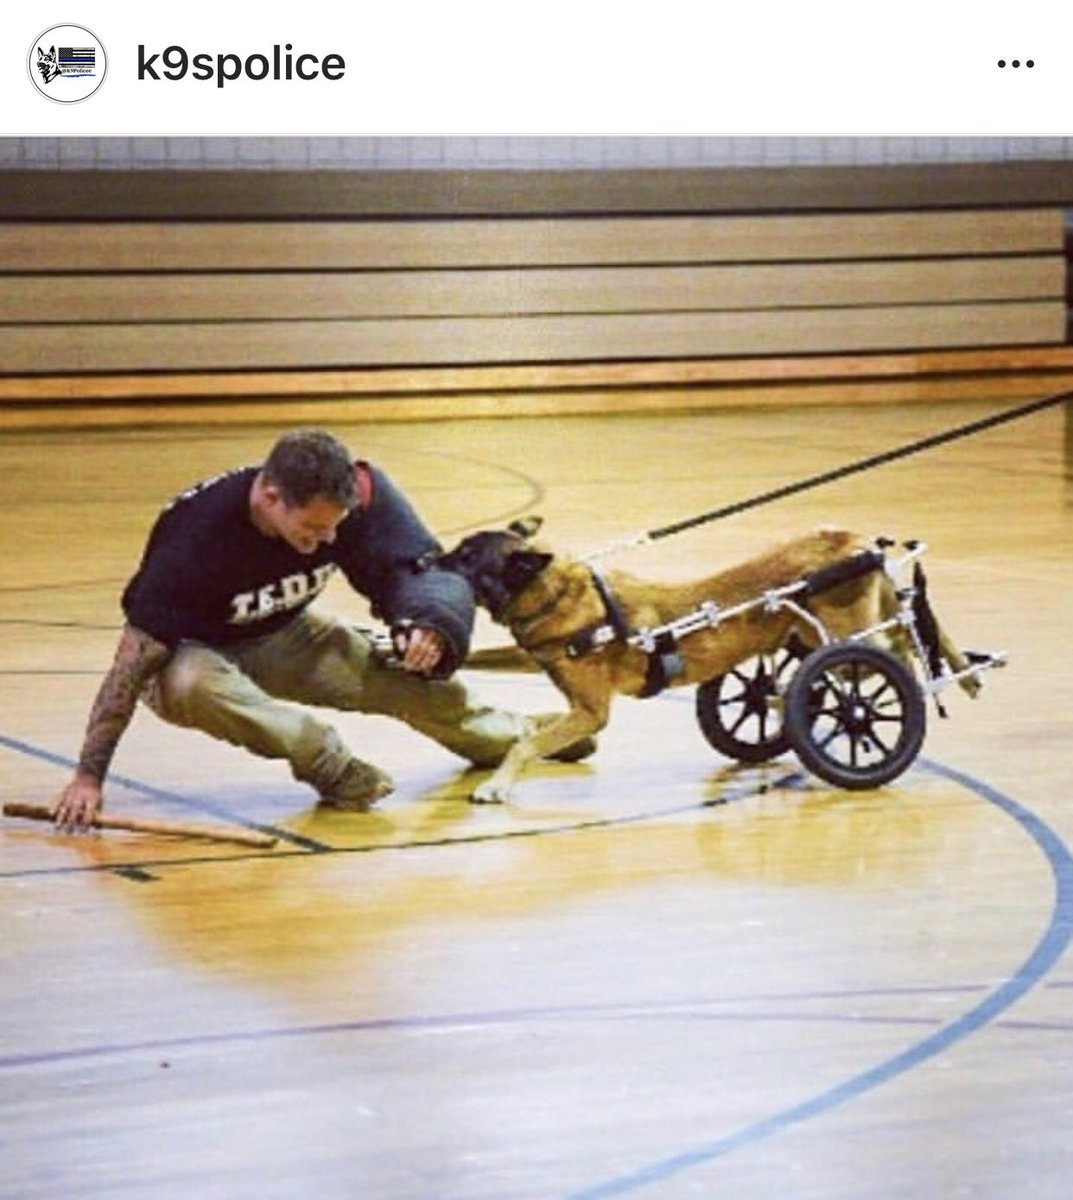 WOW. Just..... WOW!  Saw this on IG.  You can damage the body but not the spirit.  #maligator #inspiration #k9 #policek9 #policedog #livepdnation <br>http://pic.twitter.com/AVK6aEgXGk